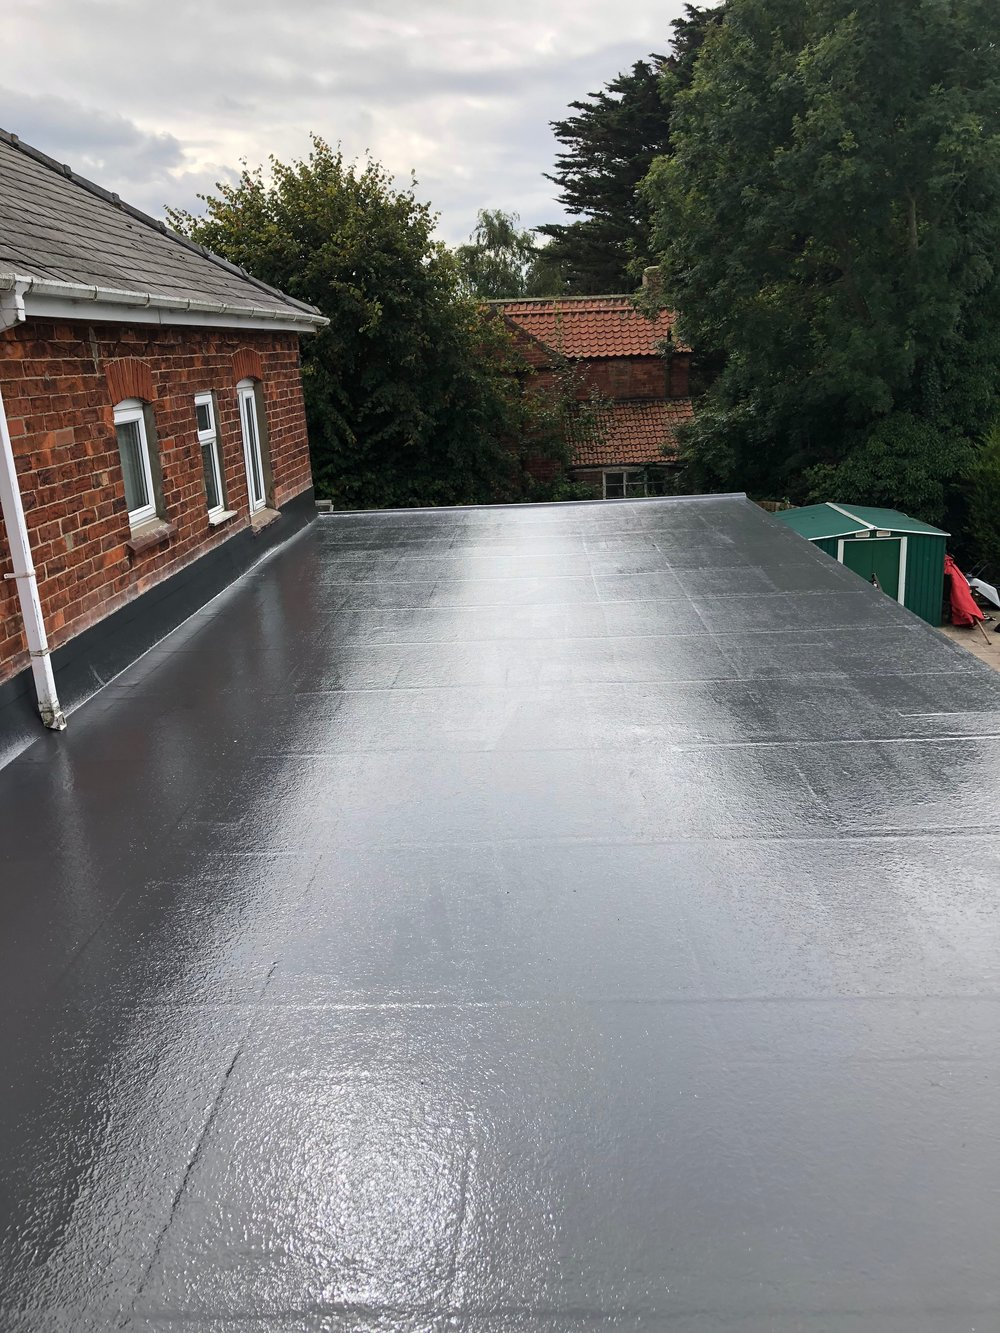 And After! - Out with the old, and in with the new. This home is now protected, once and for all with the ultimate in Fibreglass Roofing systems. Guaranteed for 25 years, with a life expectancy of up to 40 years.